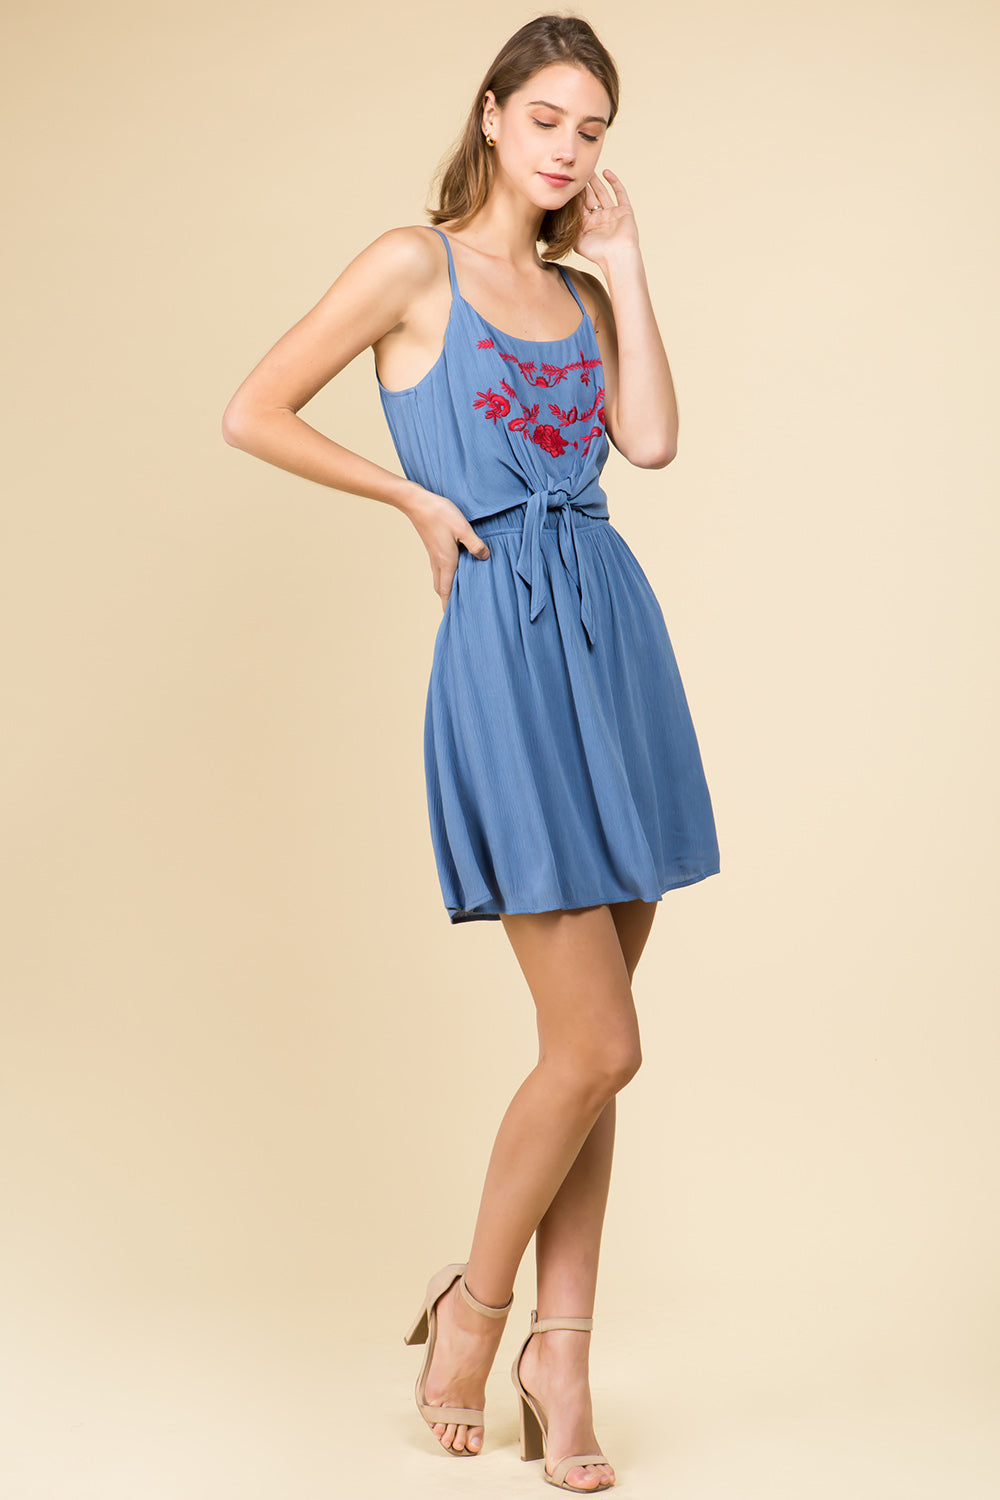 EMBROIDERED TIE FRONT MINI DRESS WITH SPAGHETTI STRAPS